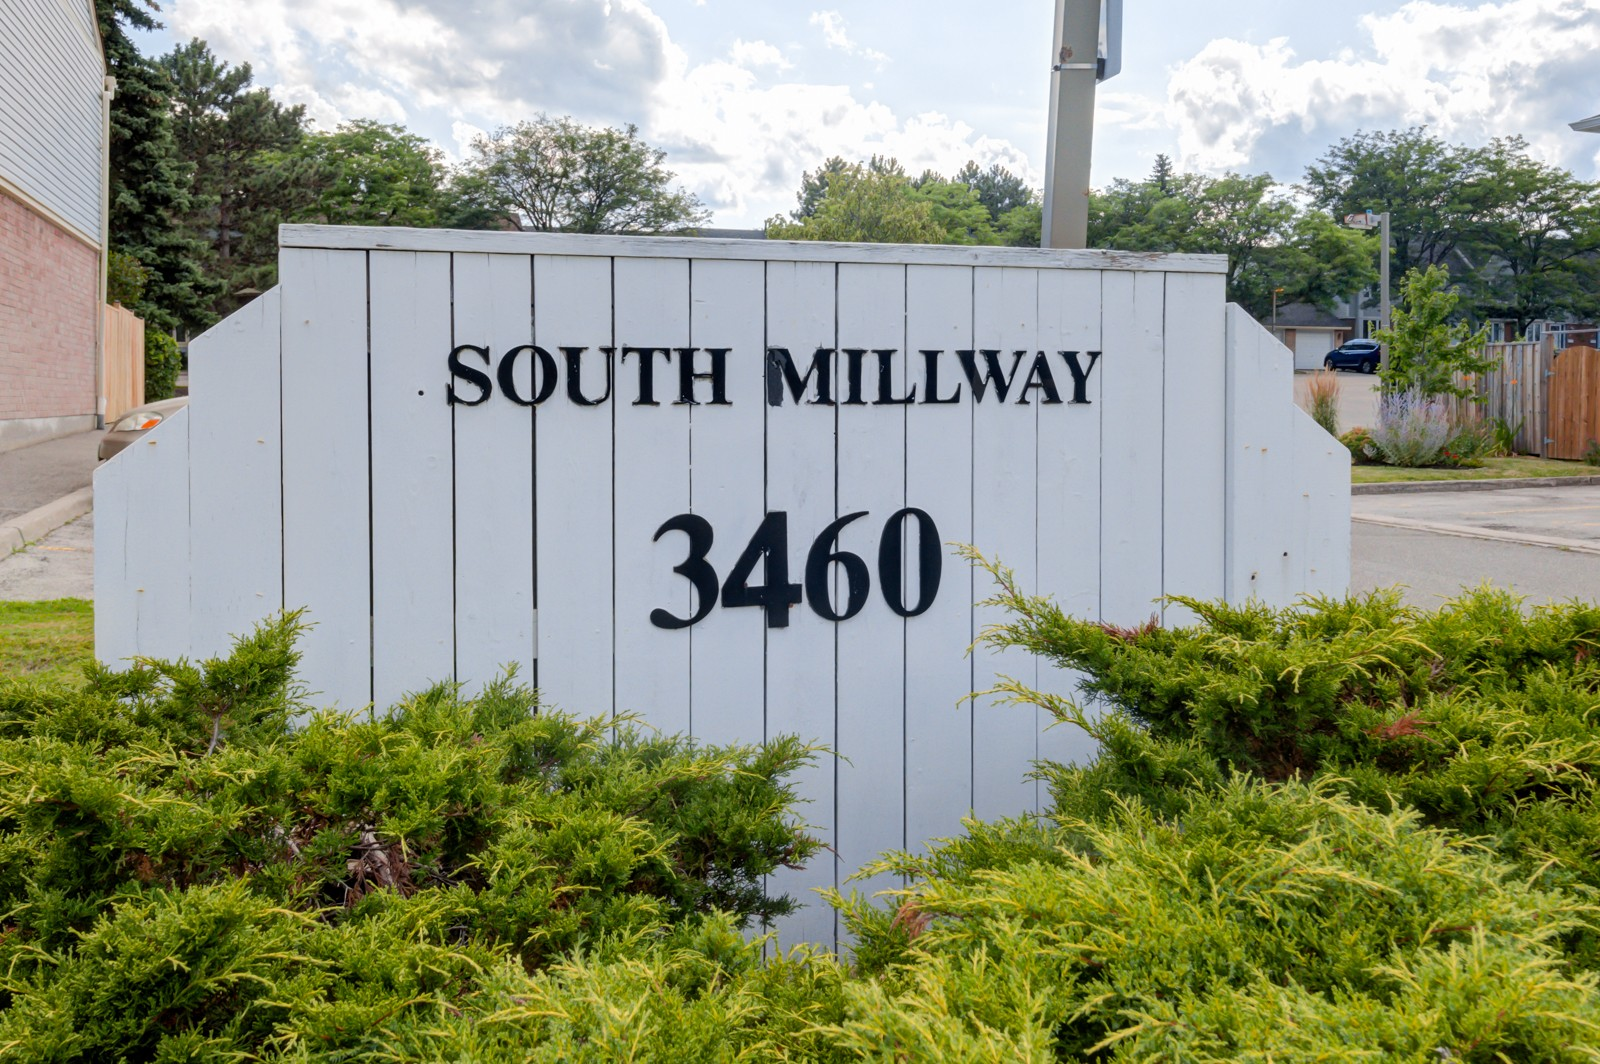 3460 South Millway Townhouses at 3460 South Millway, Mississauga 1